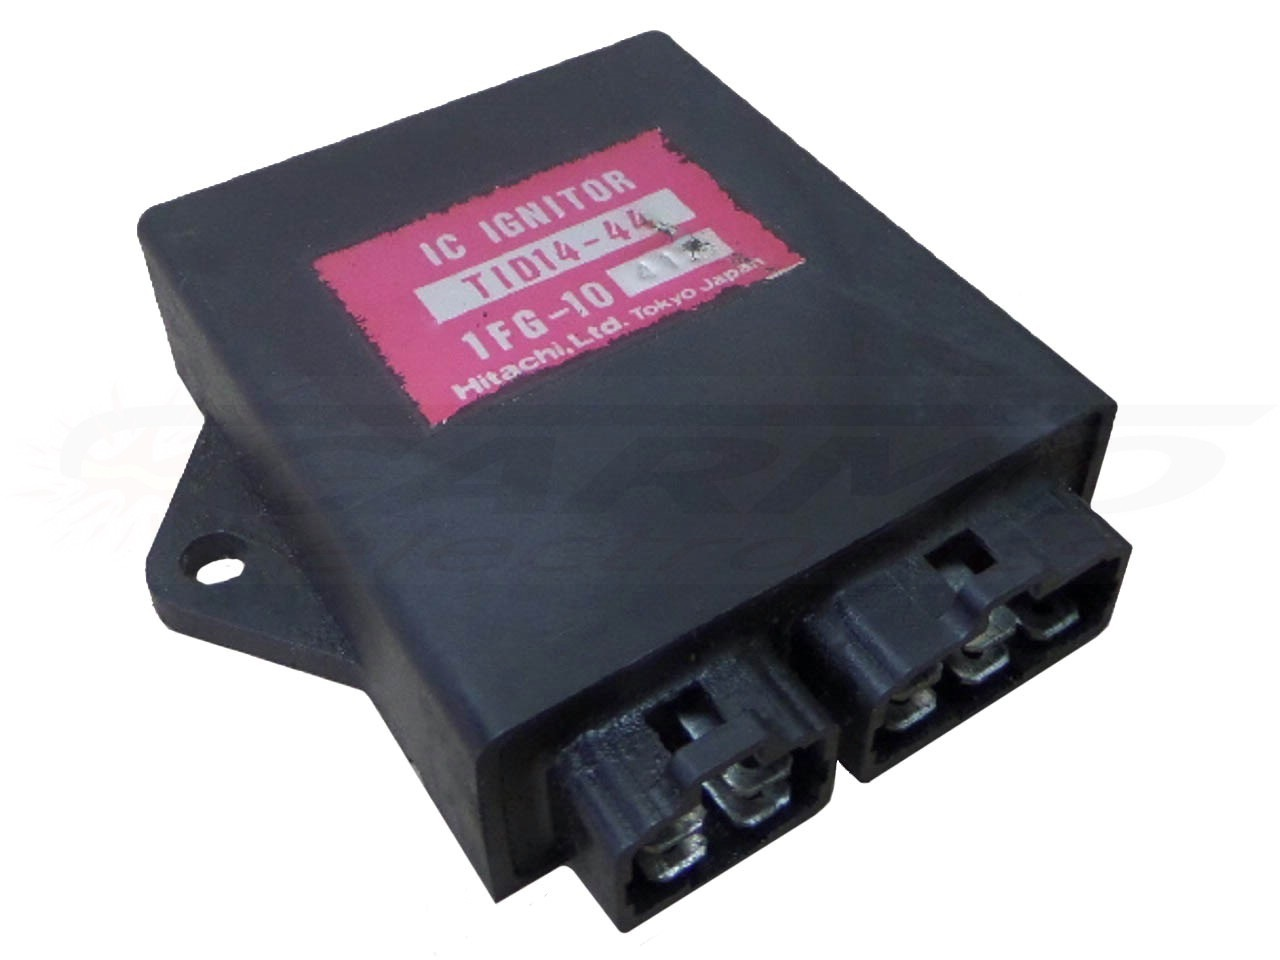 XJ750 Fuel Injection CDI TCI igniter computer controller (TID14-44, 22N10)